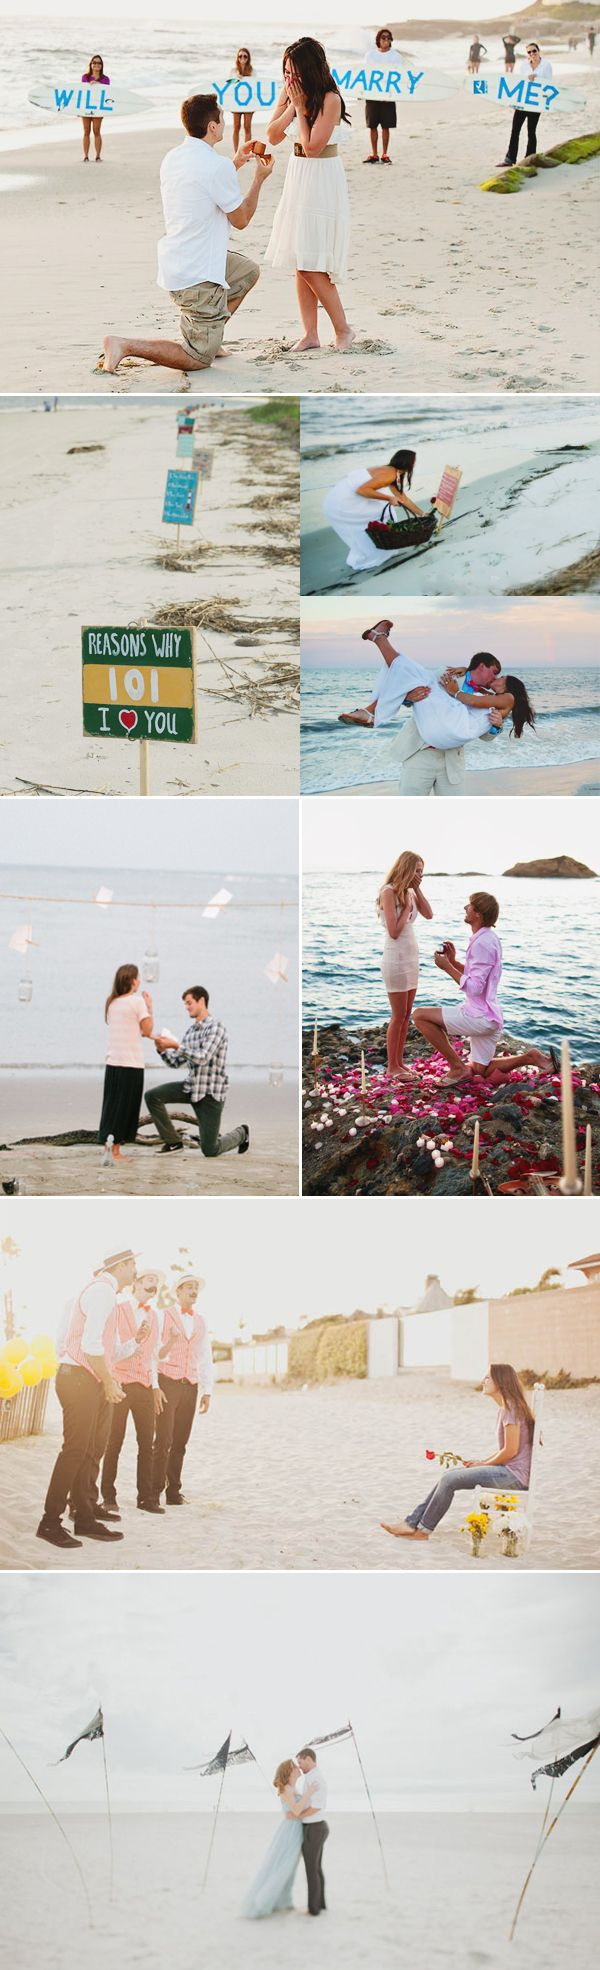 Your proposal story will be told over and over again to friends and family, so make it special with some romantic and creative ideas! Here are some marriage proposal ideas that are sure to make a beautiful impression!   Beach Proposal Credits (from top and left): Lenoce / Moreland photography / Caroline Ro Photography / …